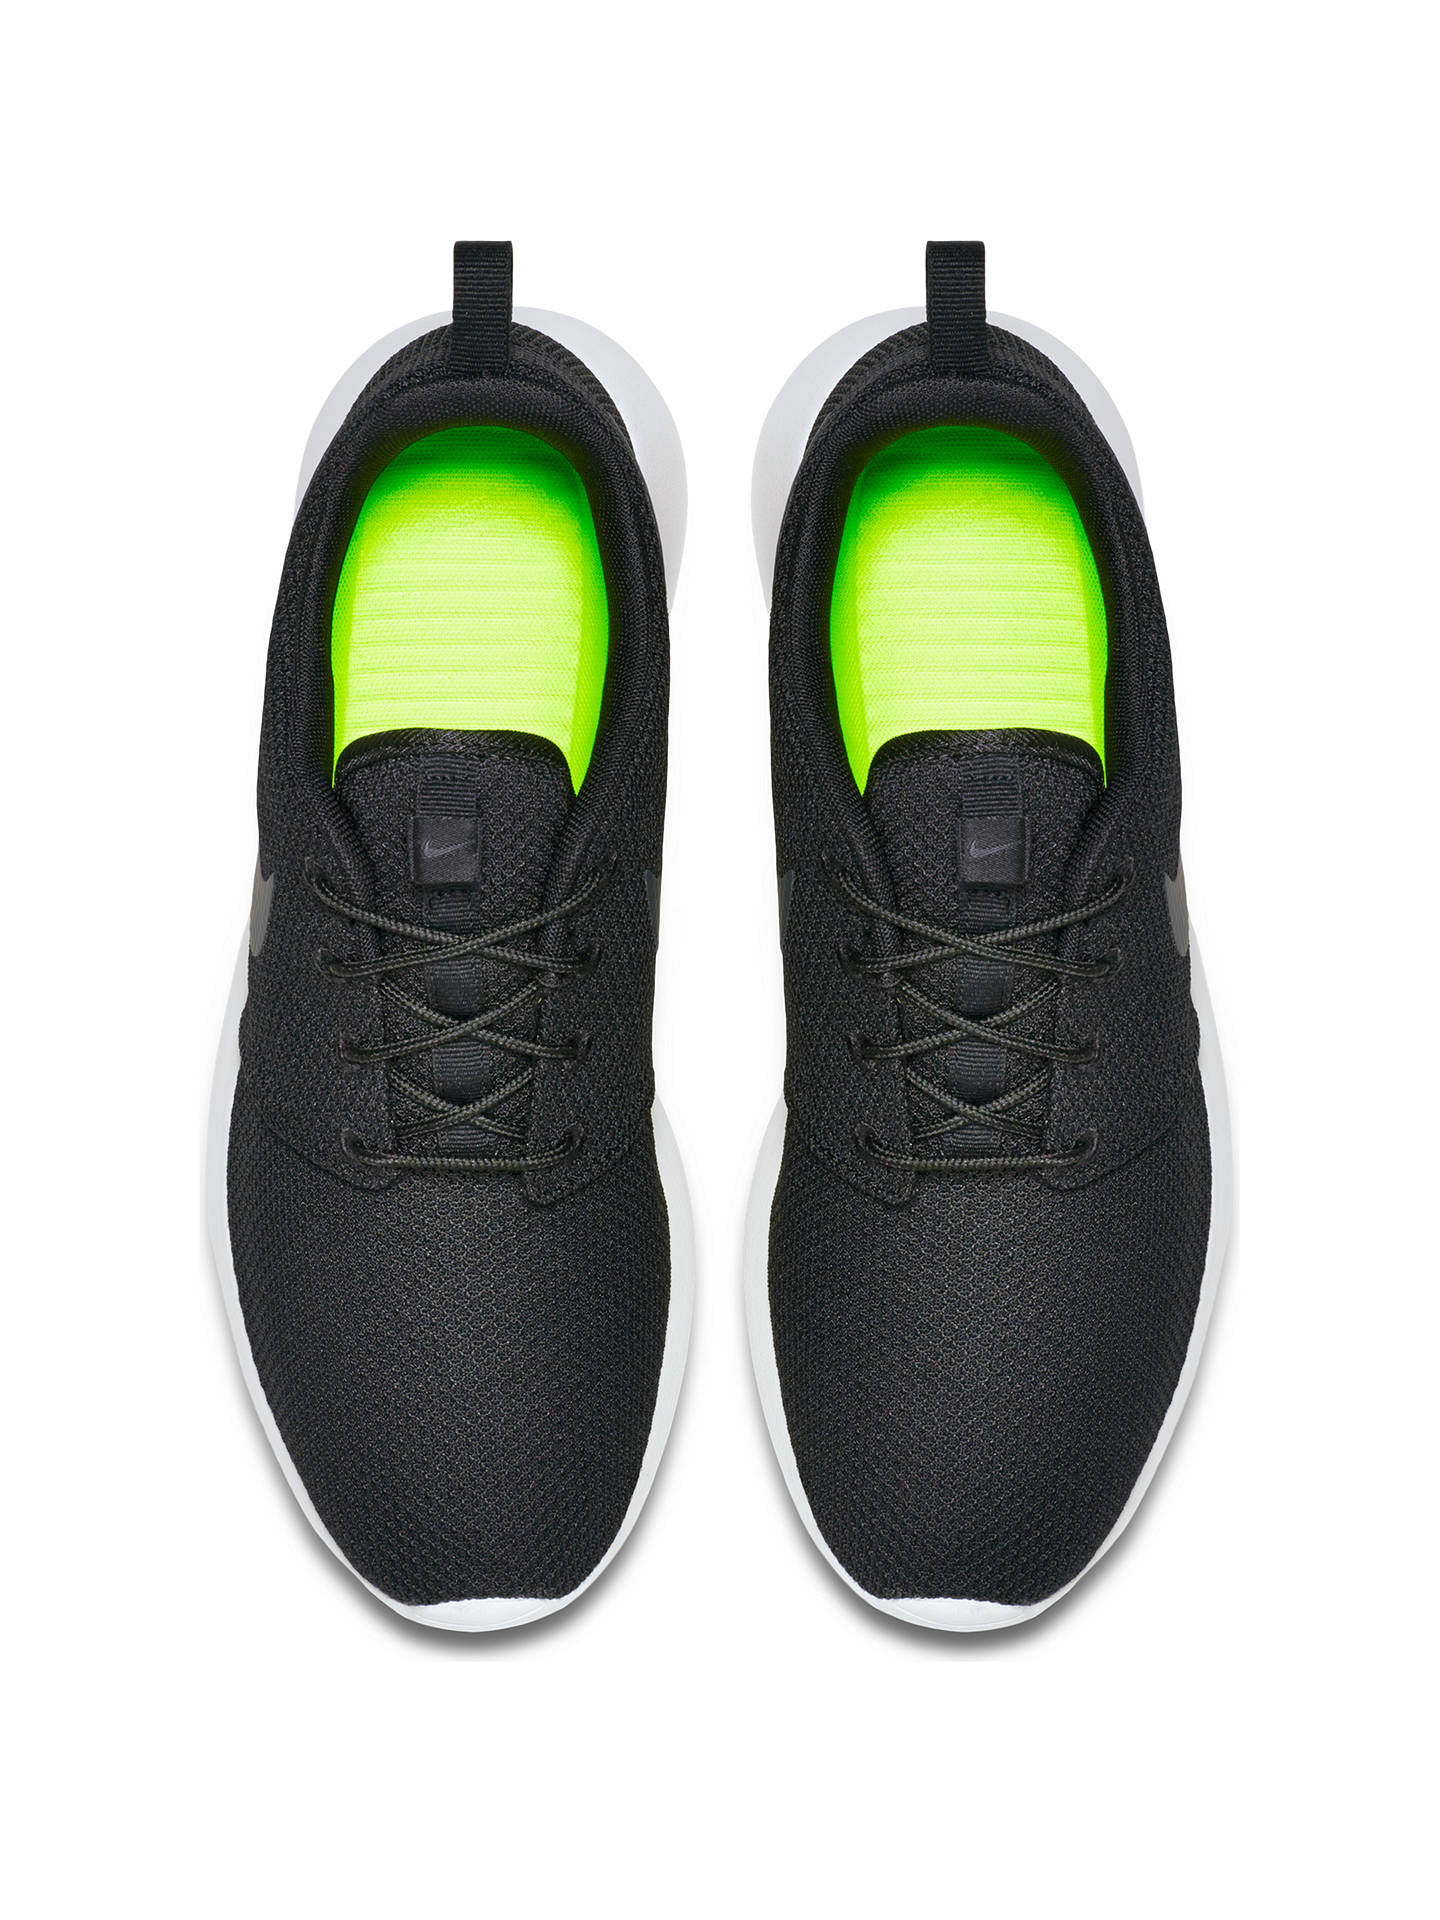 b4d0c658a076 Buy Nike Roshe One Men s Trainers